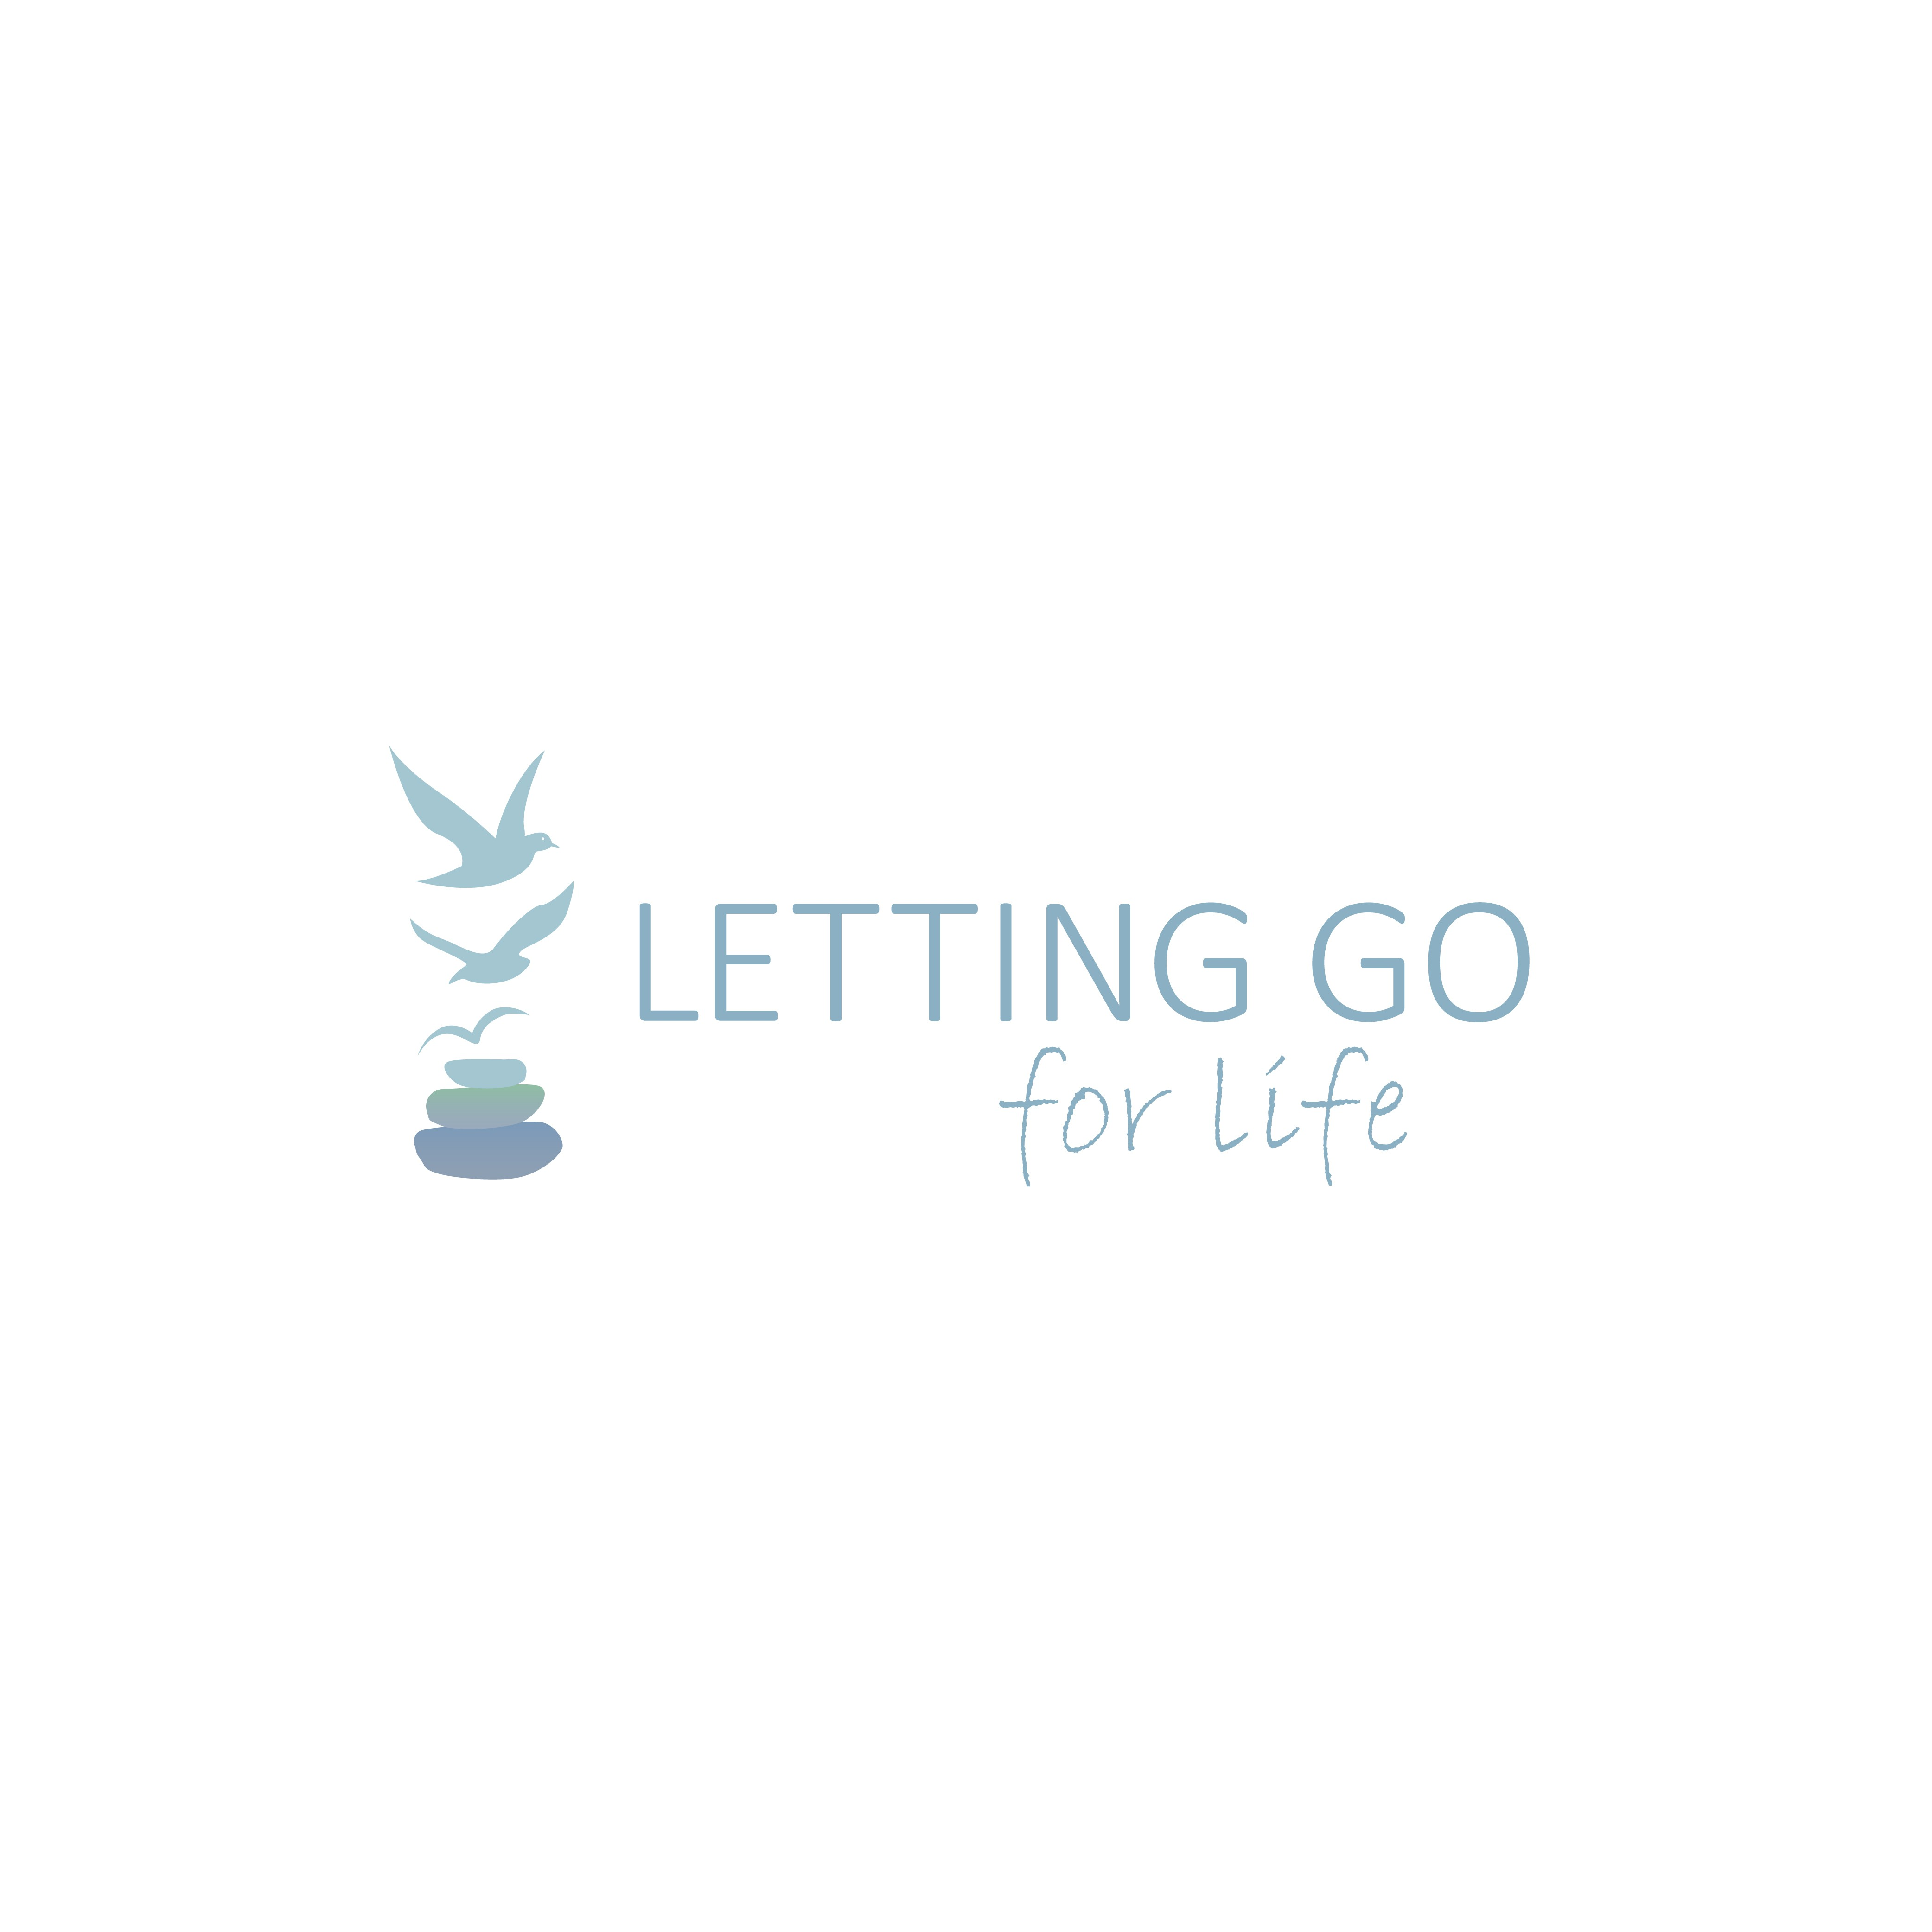 Lettinggoforlife.com Healing services logo to symbolize 'Letting Go'  of negative thoughts.